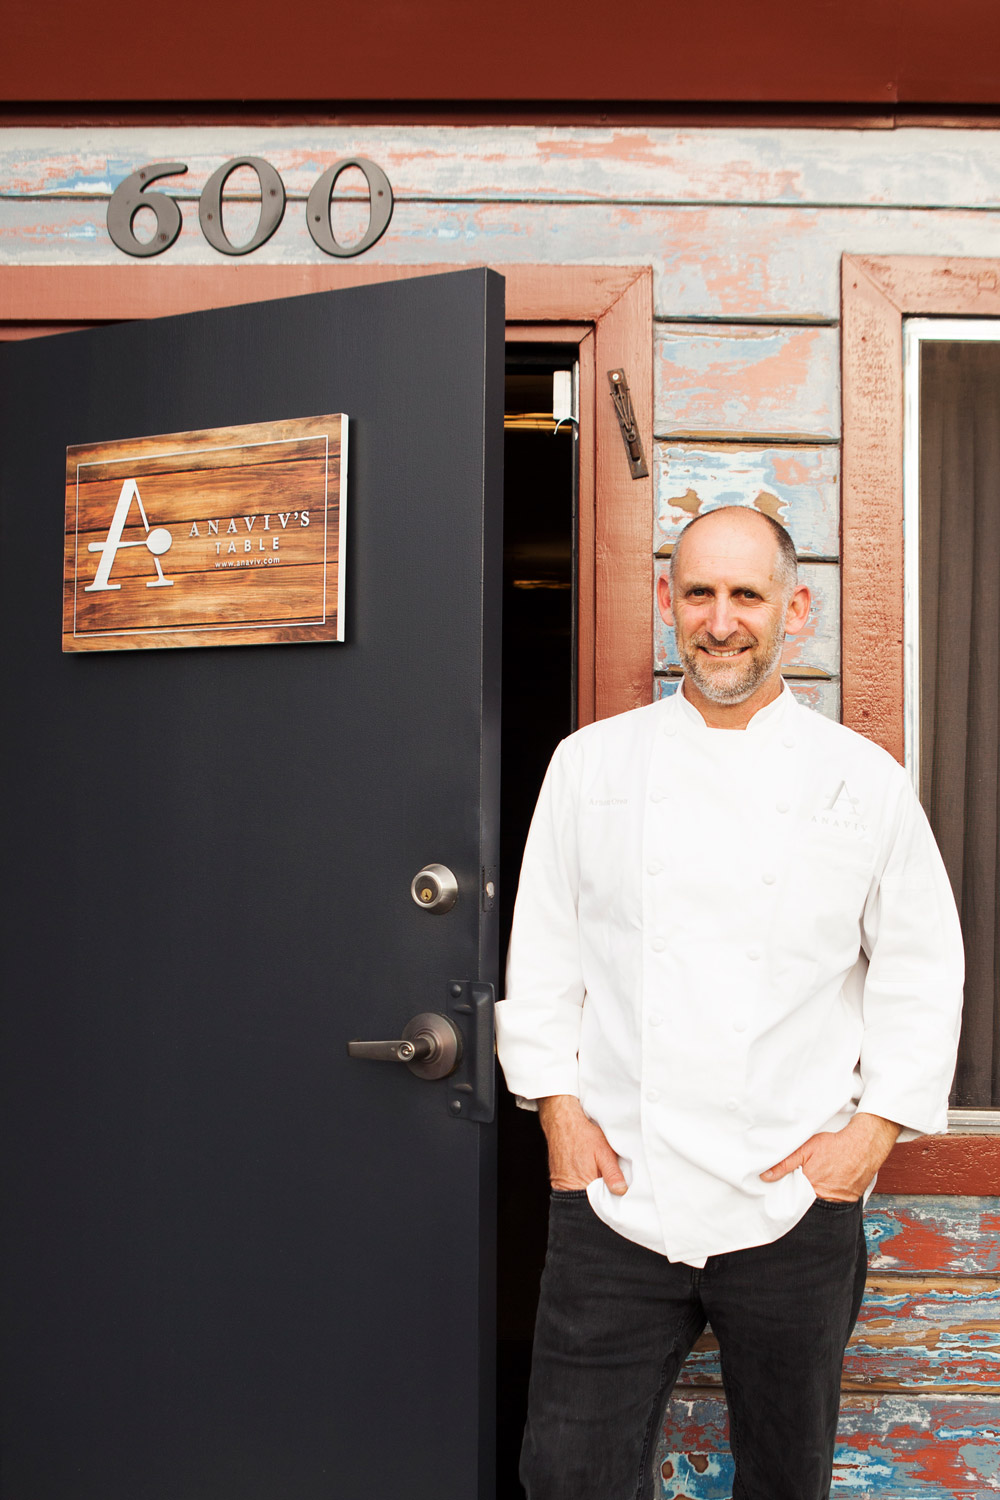 Arnon Oren at the entrance to his catering kitchen, now moonlighting as Anaviv's Table.